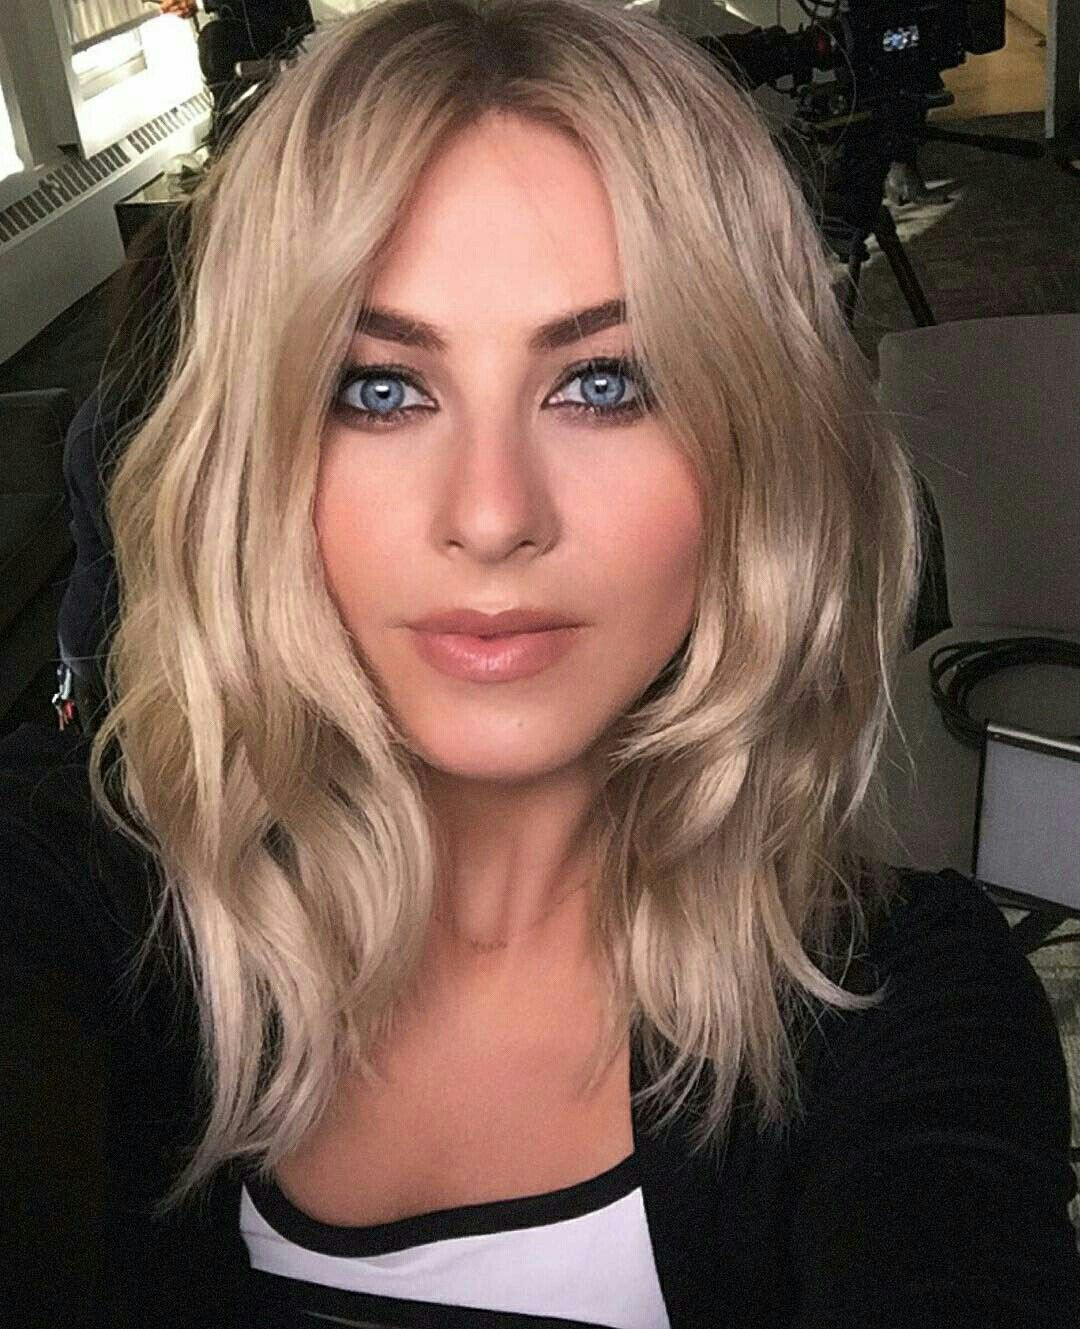 Julianne Hough Red Blonde Hair Shoulder Hair Blonde Hair With Red Tips